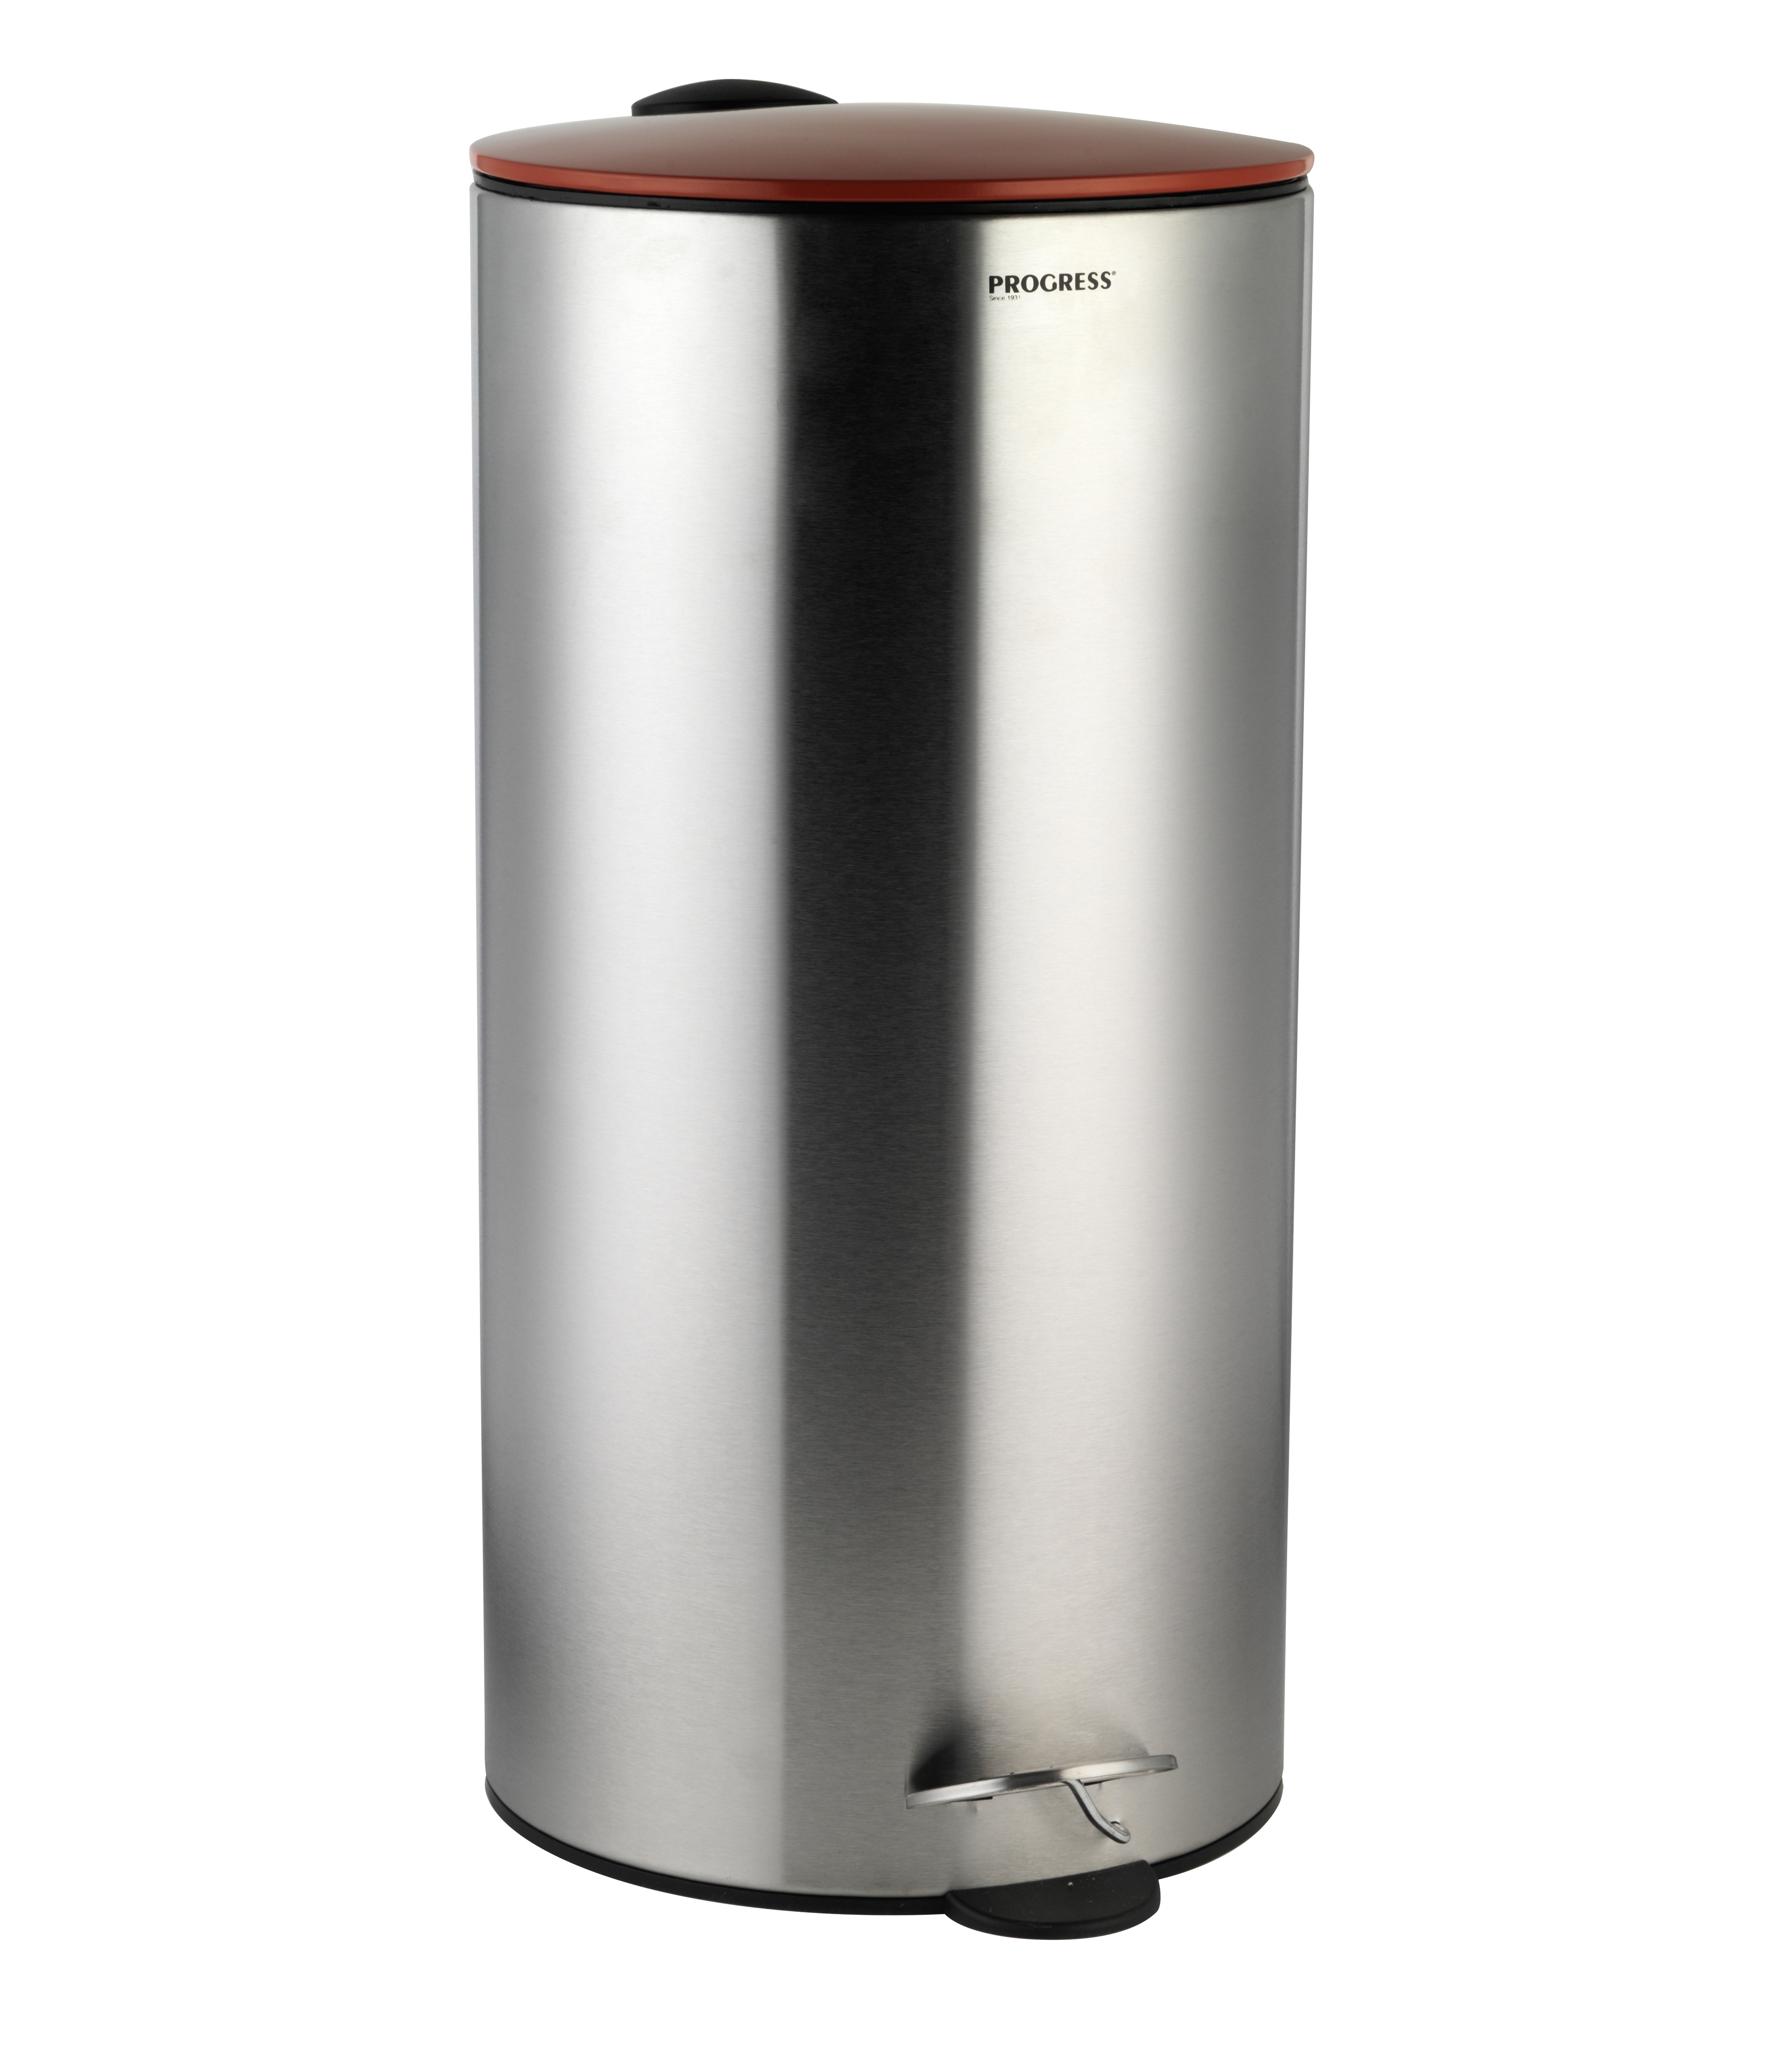 Progress litre stainless steel pedal bin with red soft